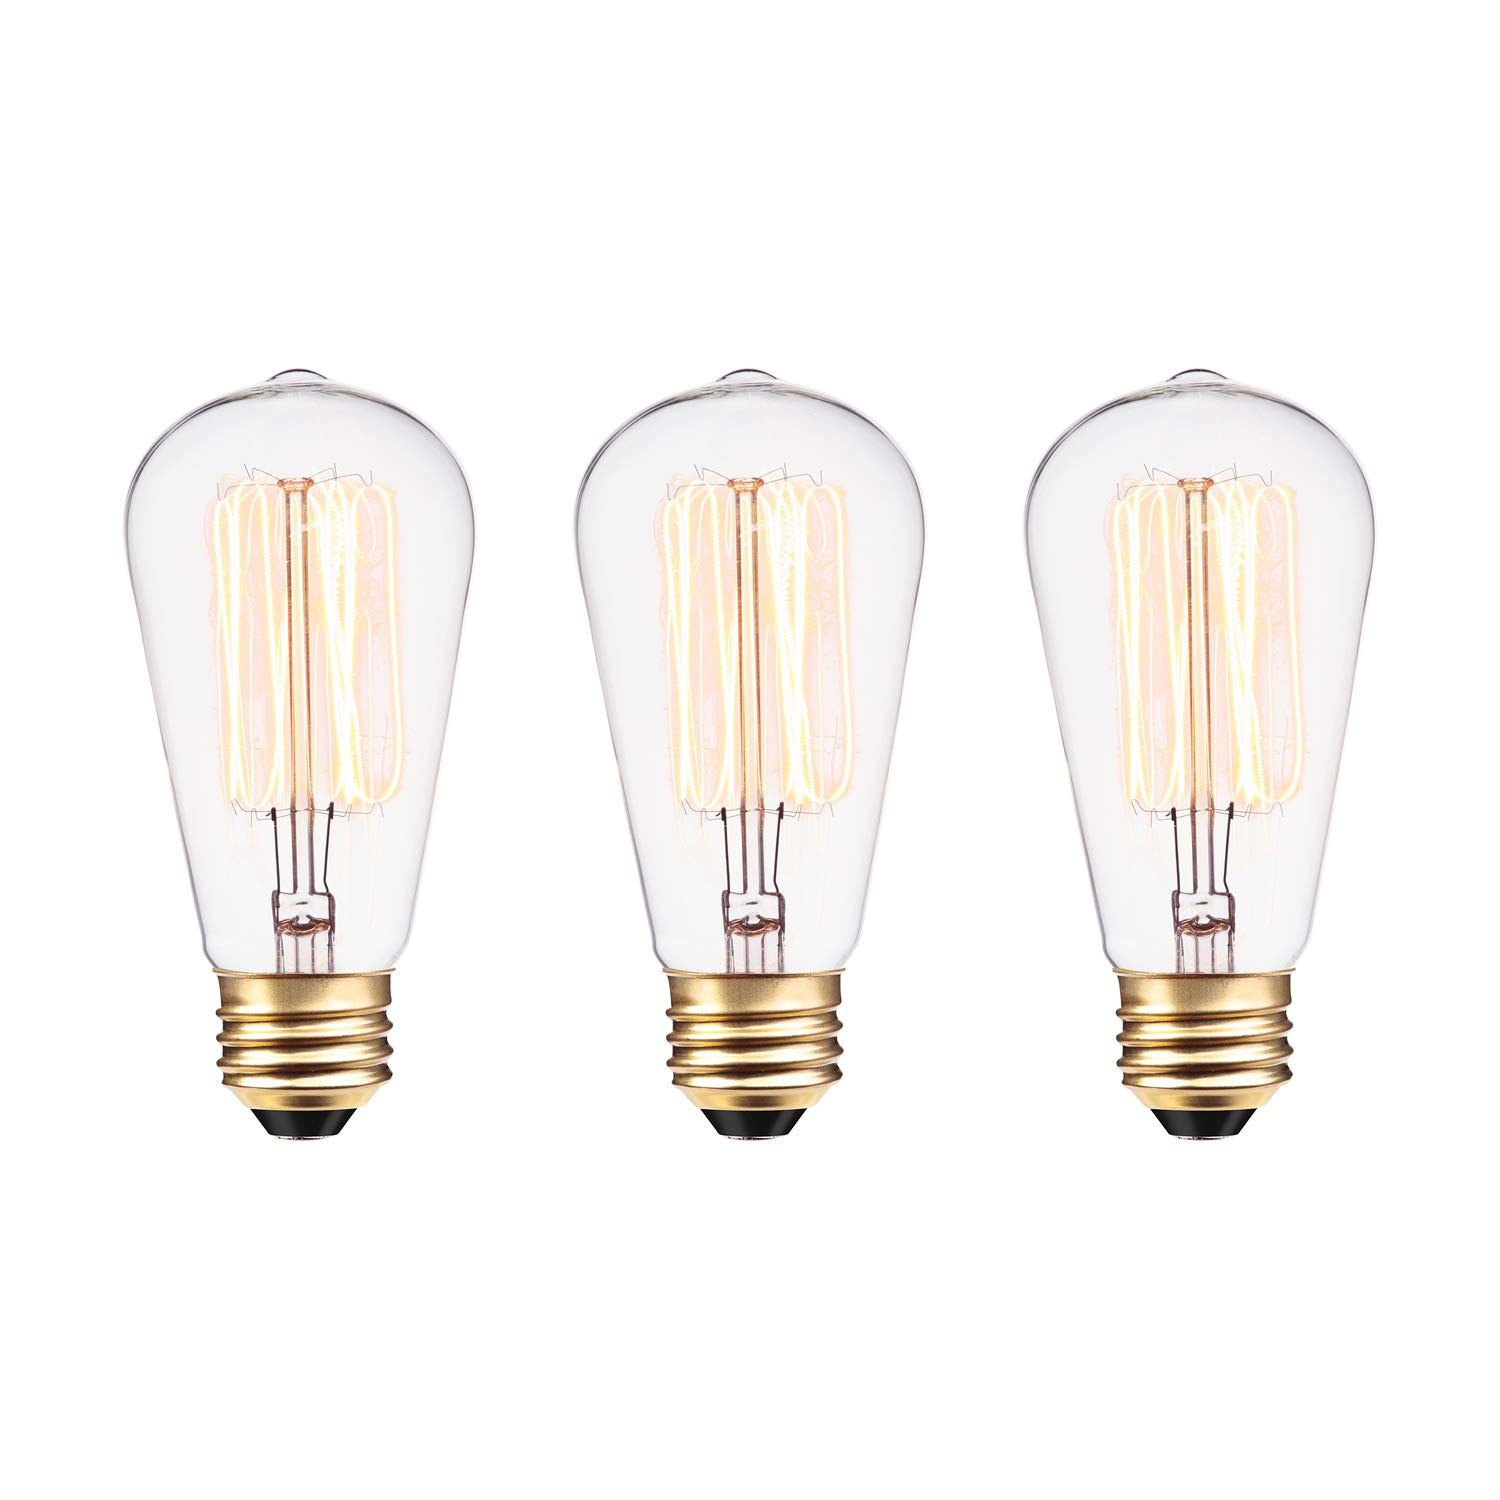 591bedf9ecb Globe Electric 60W Vintage Edison S60 Squirrel Cage Incandescent Filament Light  Bulb 3-Pack